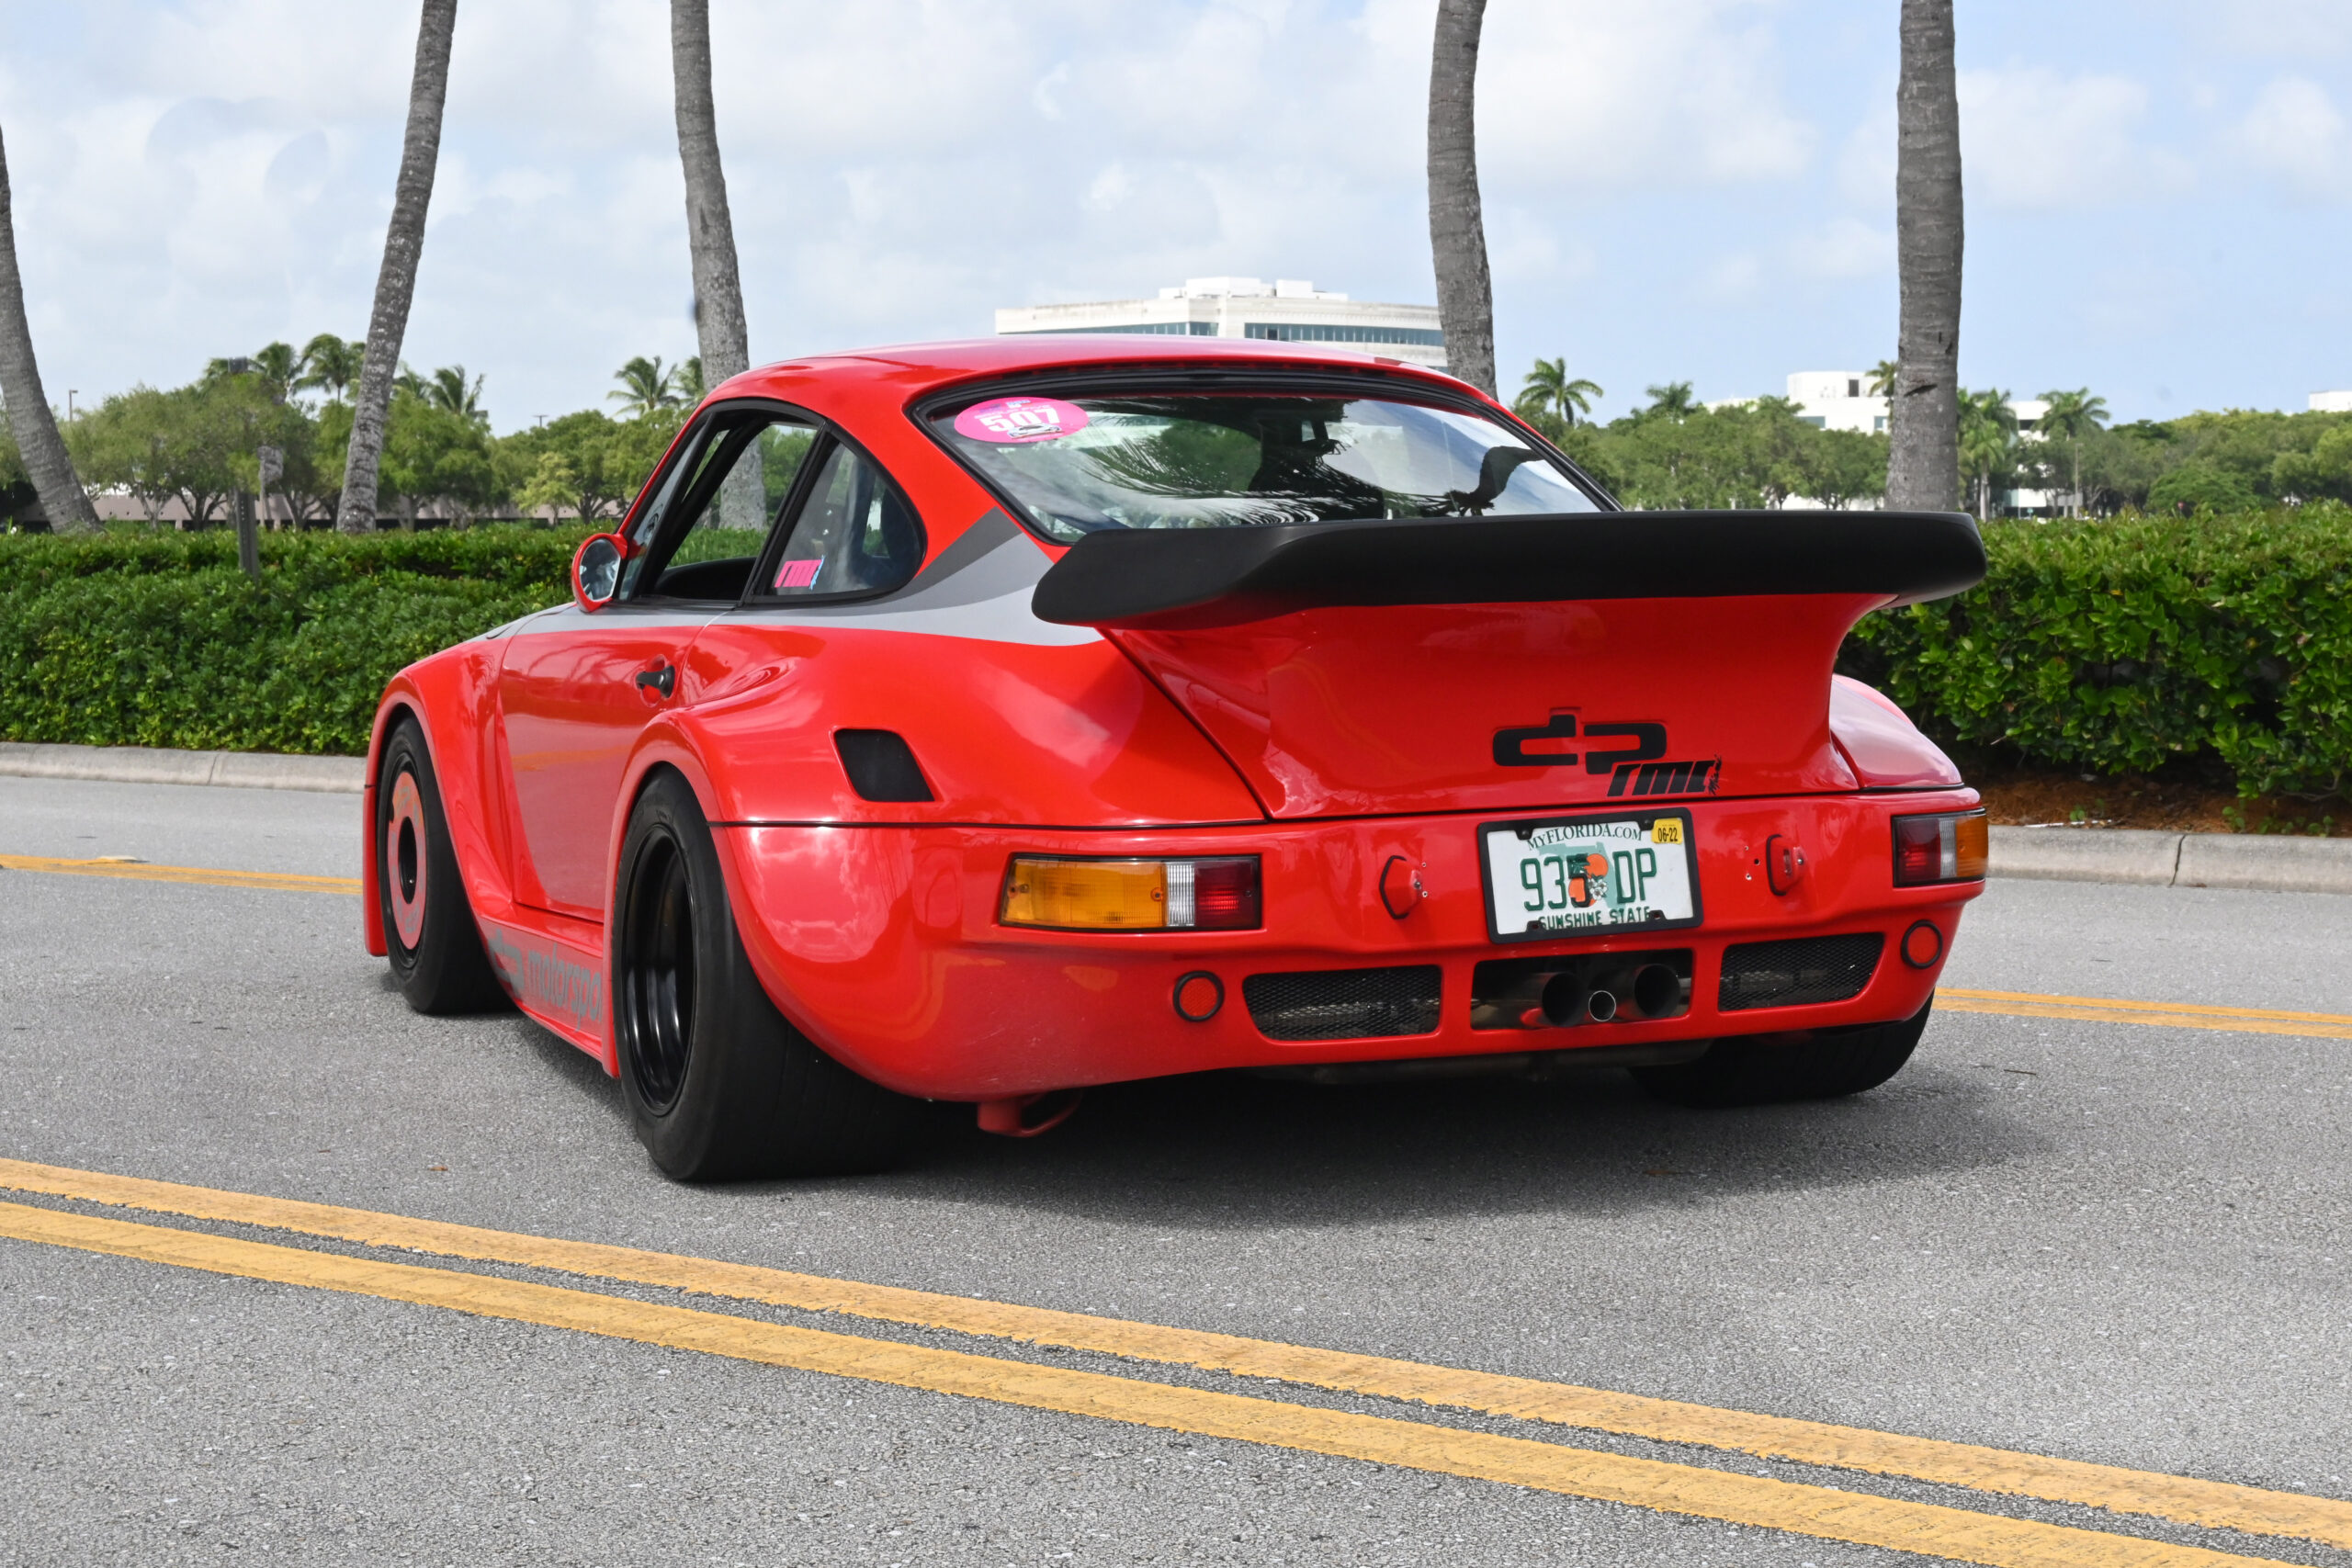 1989 DPII 935, DP VIN, ONE OF 4 LONG WINDSHIELD EVER MADE, COMPREHENSIVE 935 AERO, THE REAL DEAL, POWERED BY AN RS TUNING ENGINE